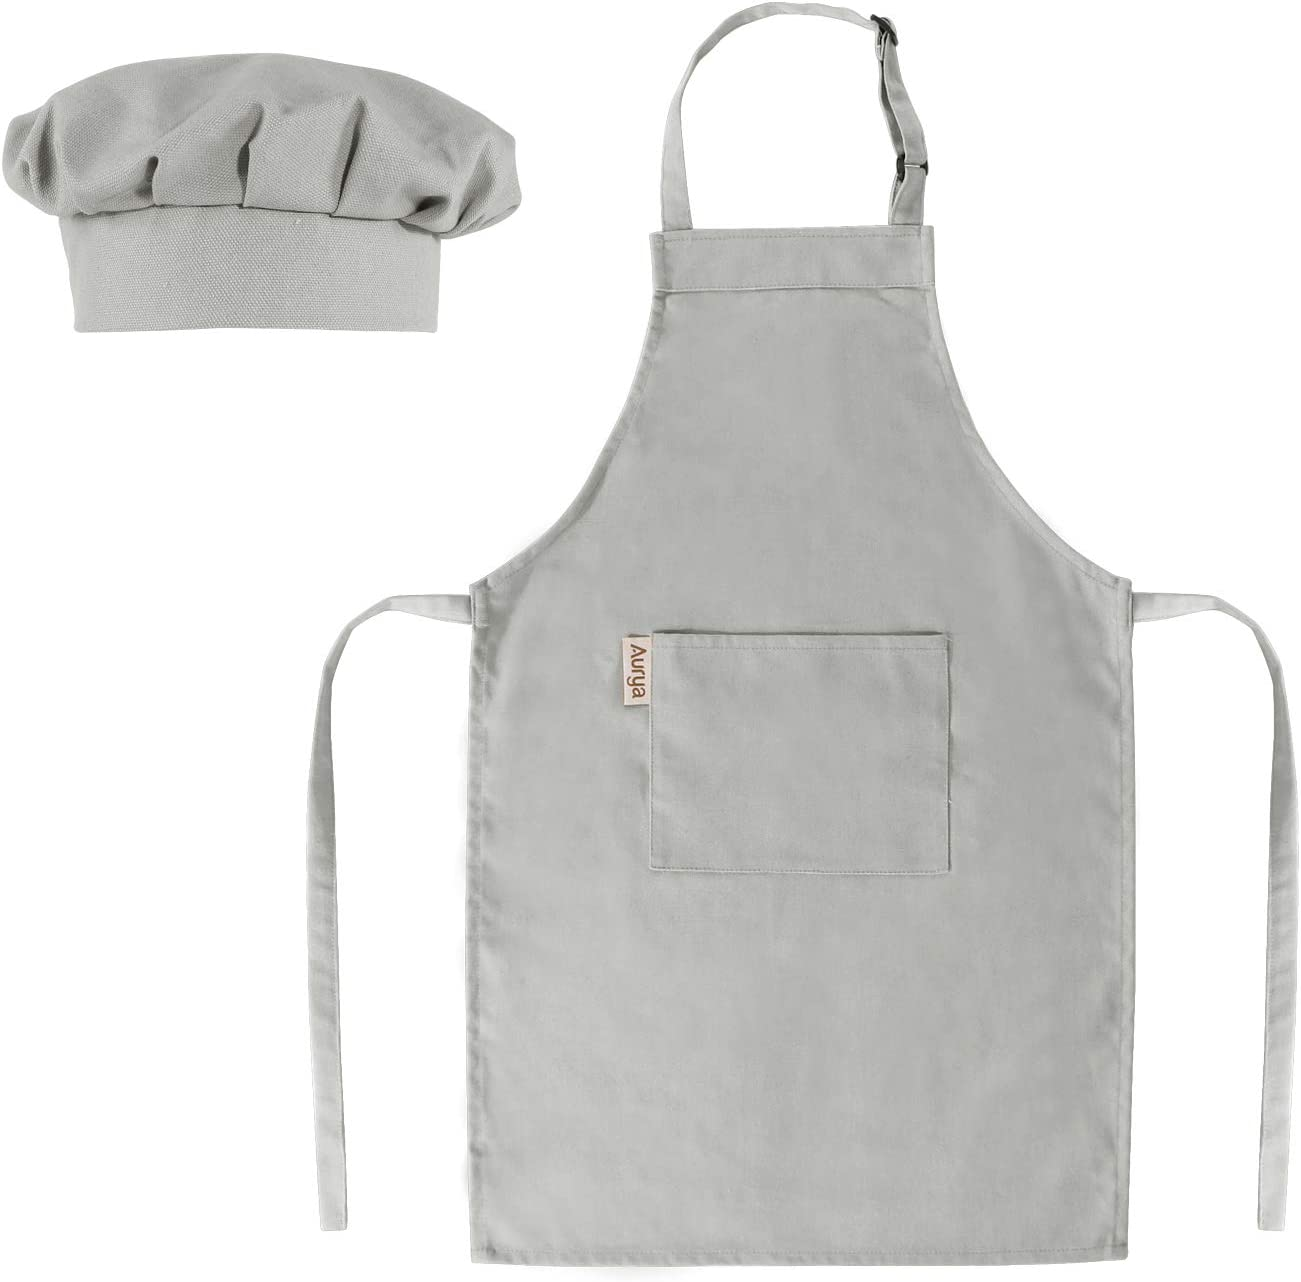 green Baking Painting CF3013 Kids Apron and Chef Hat Set 6-9 Year Childrens Adjustable Bib Aprons with 2 Pockets for Cooking